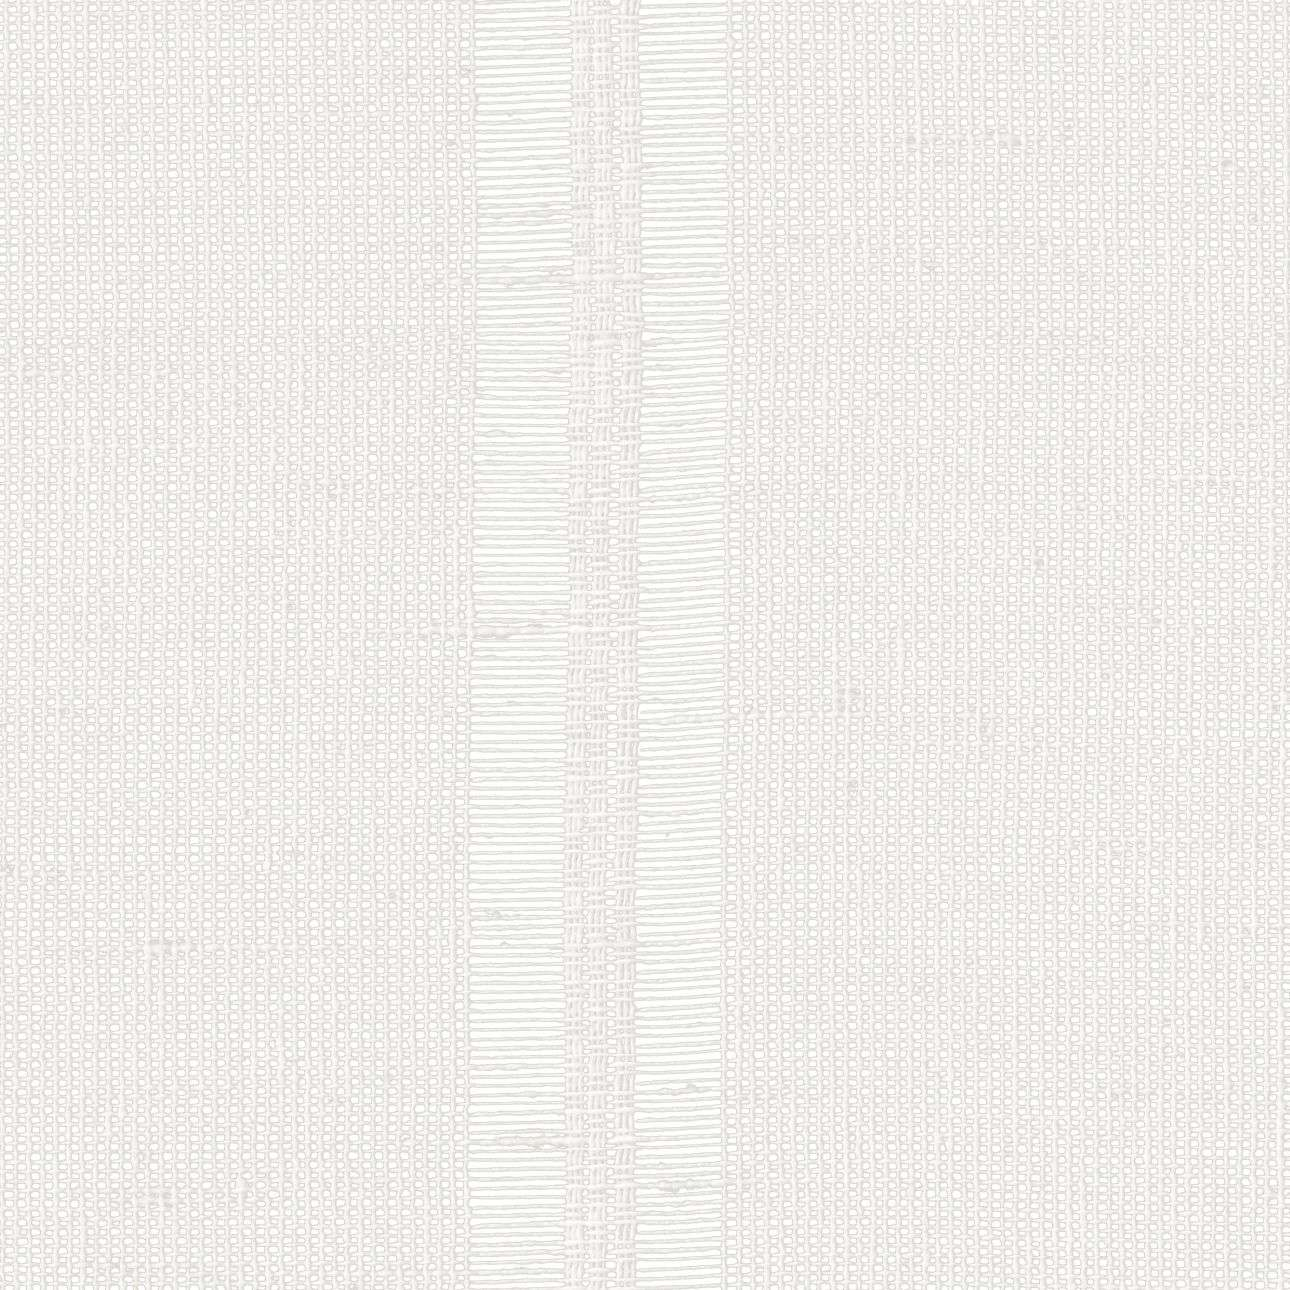 Florence roman blind  80 x 170 cm (31.5 x 67 inch) in collection Romantica, fabric: 141-30